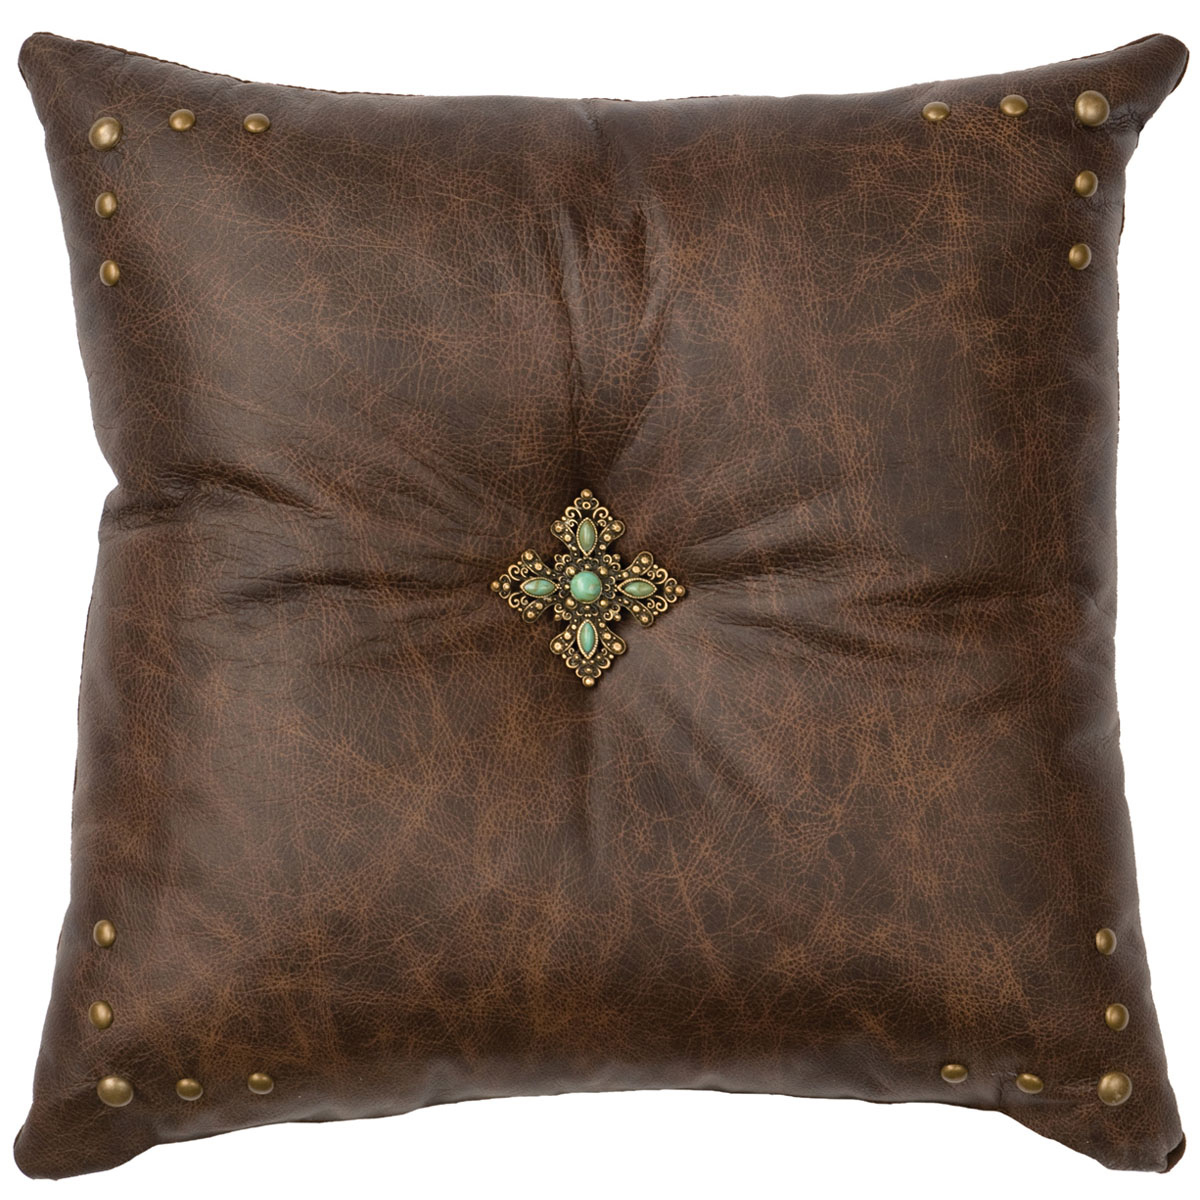 Turquoise Cross Concho Leather Pillow - Leather Back